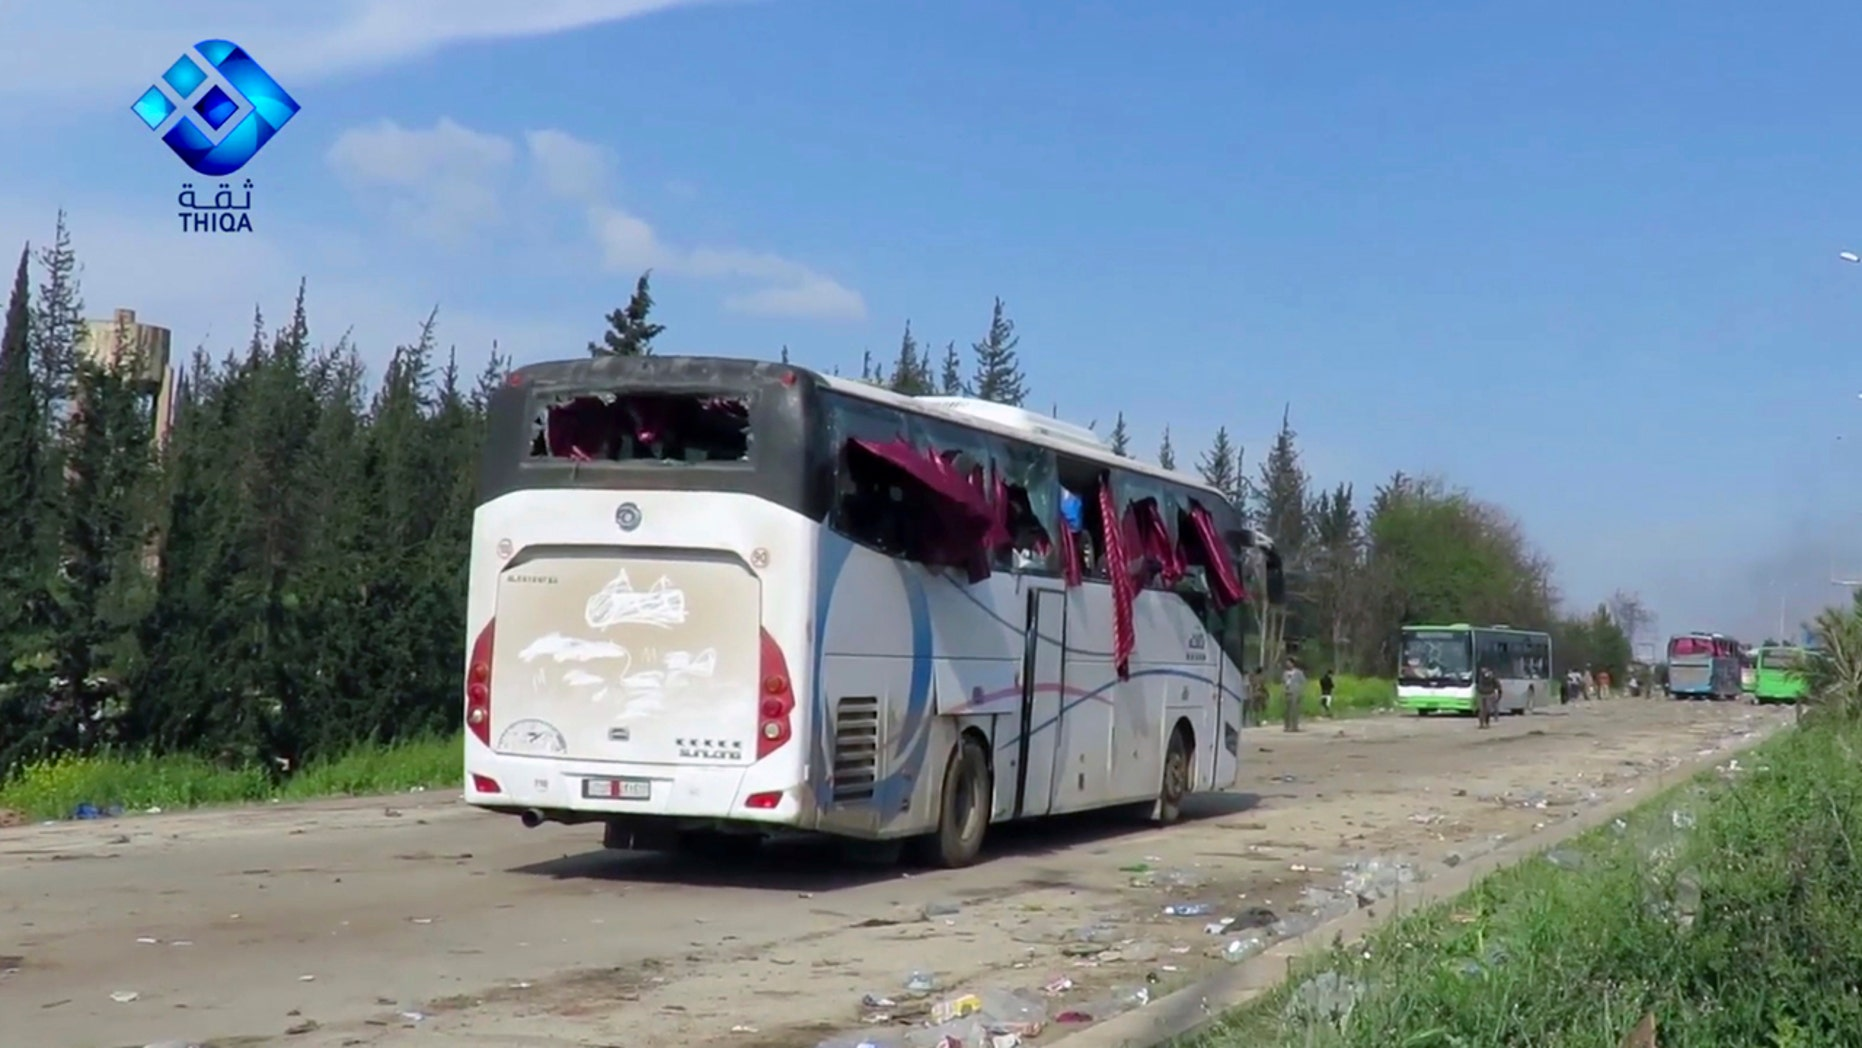 This frame grab from video provided by the Thiqa News Agency, shows buses damaged by a blast at the Rashideen area, a rebel-controlled district outside Aleppo city, Syria, Saturday, April. 15, 2017